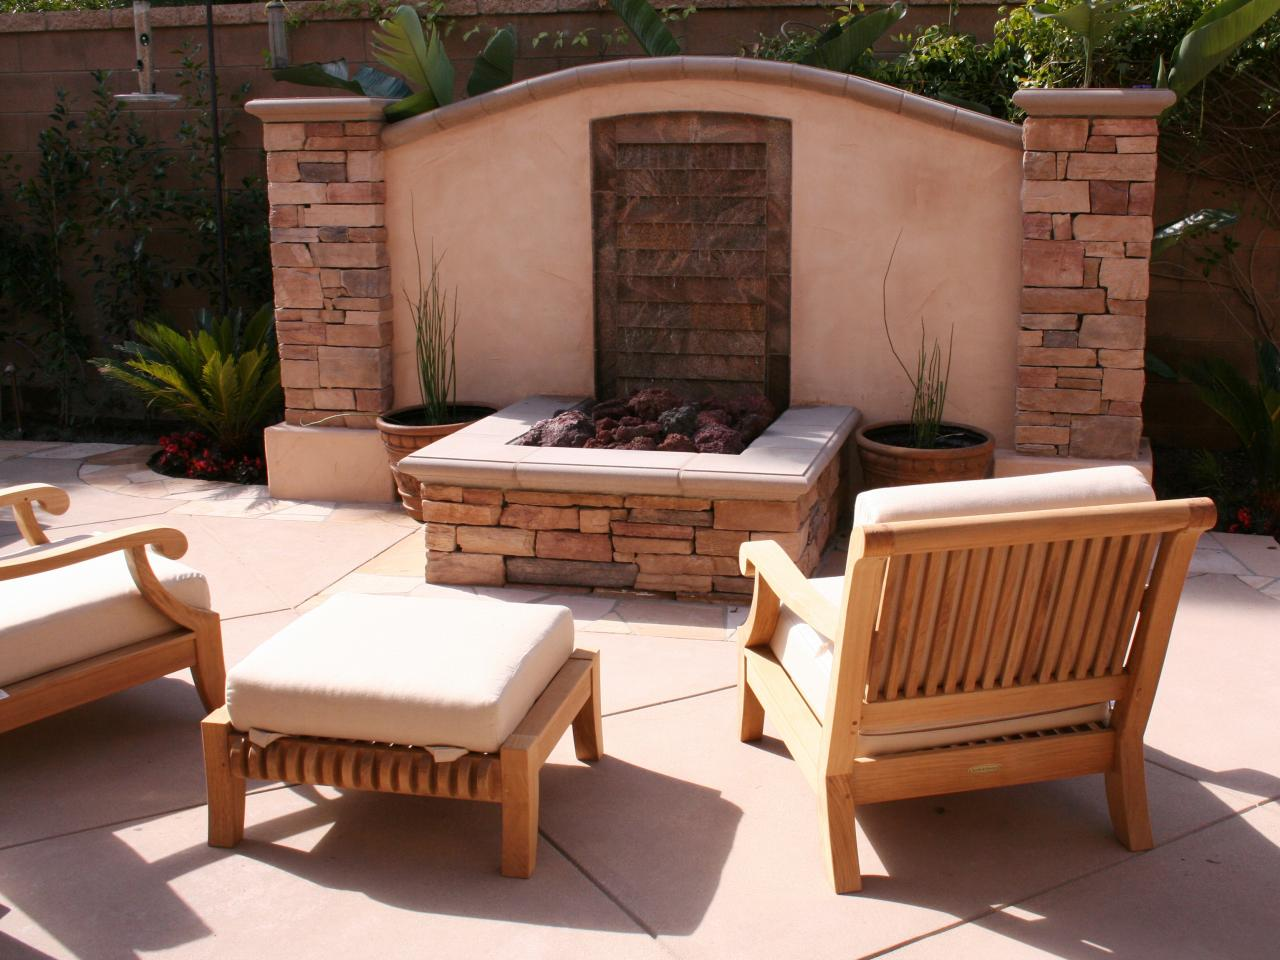 Choosing Ceramic Fire Pit for your Patio